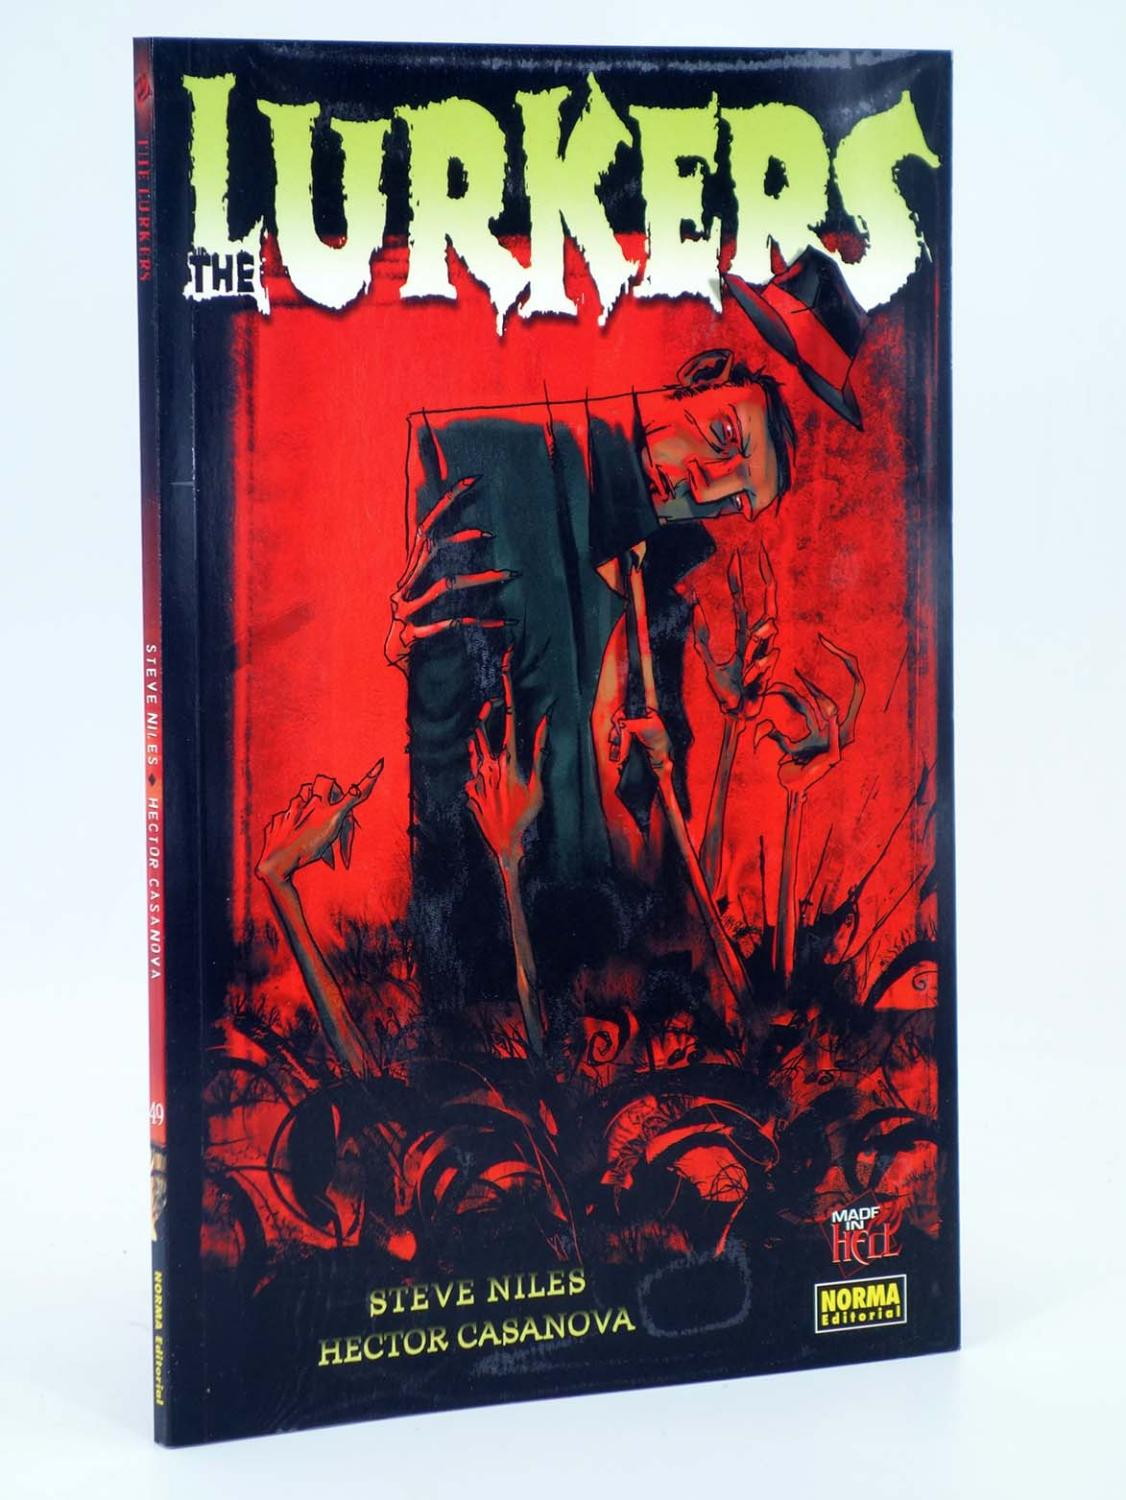 MADE IN HELL 49. THE LURKERS (Steve Niles / Hector Casanova) Norma, 2007. OFRT antes 10E - Steve Niles / Hector Casanova